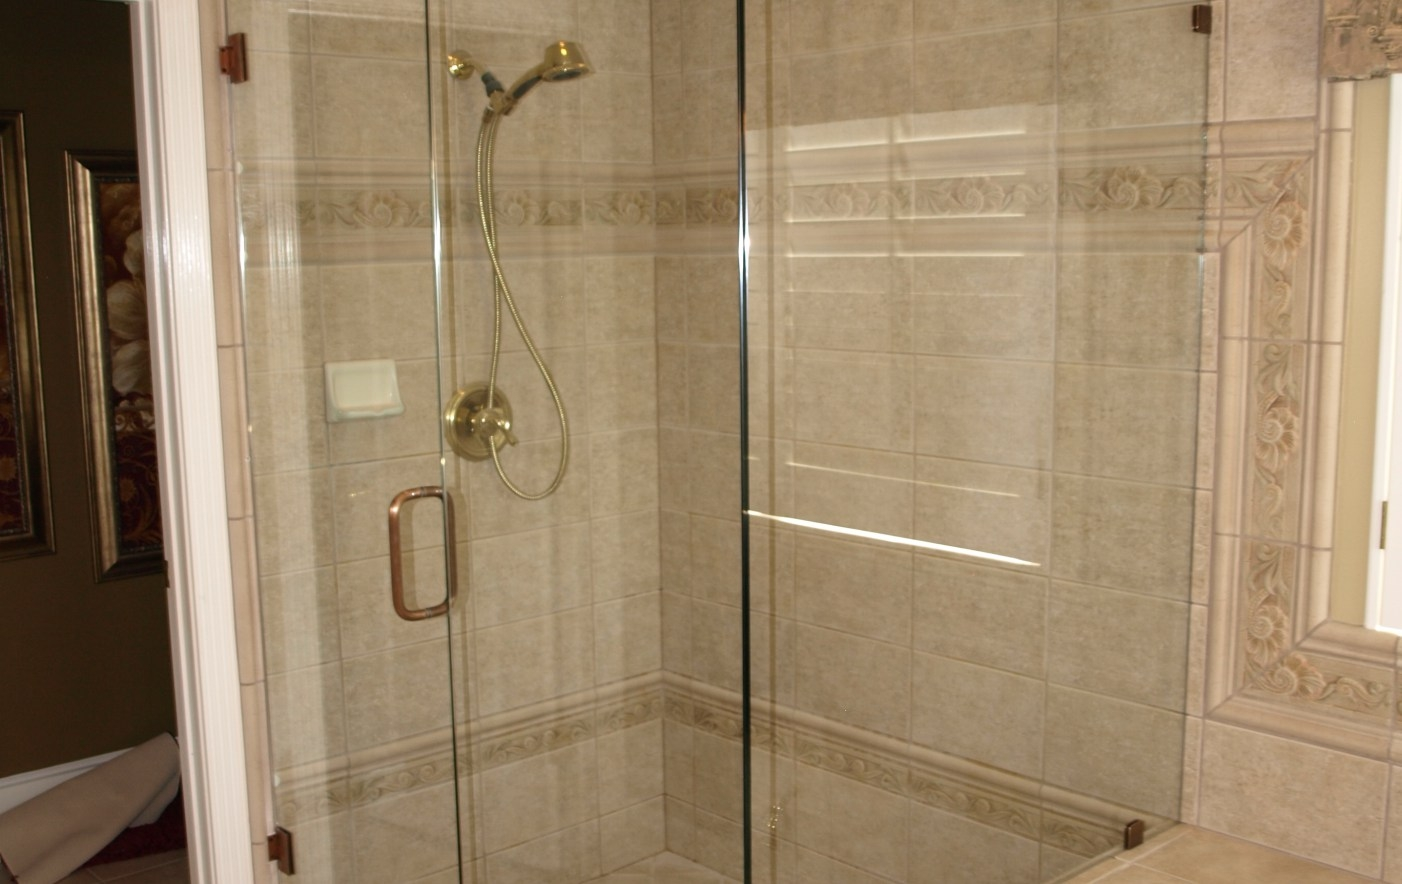 Work Right Products Shower Doors